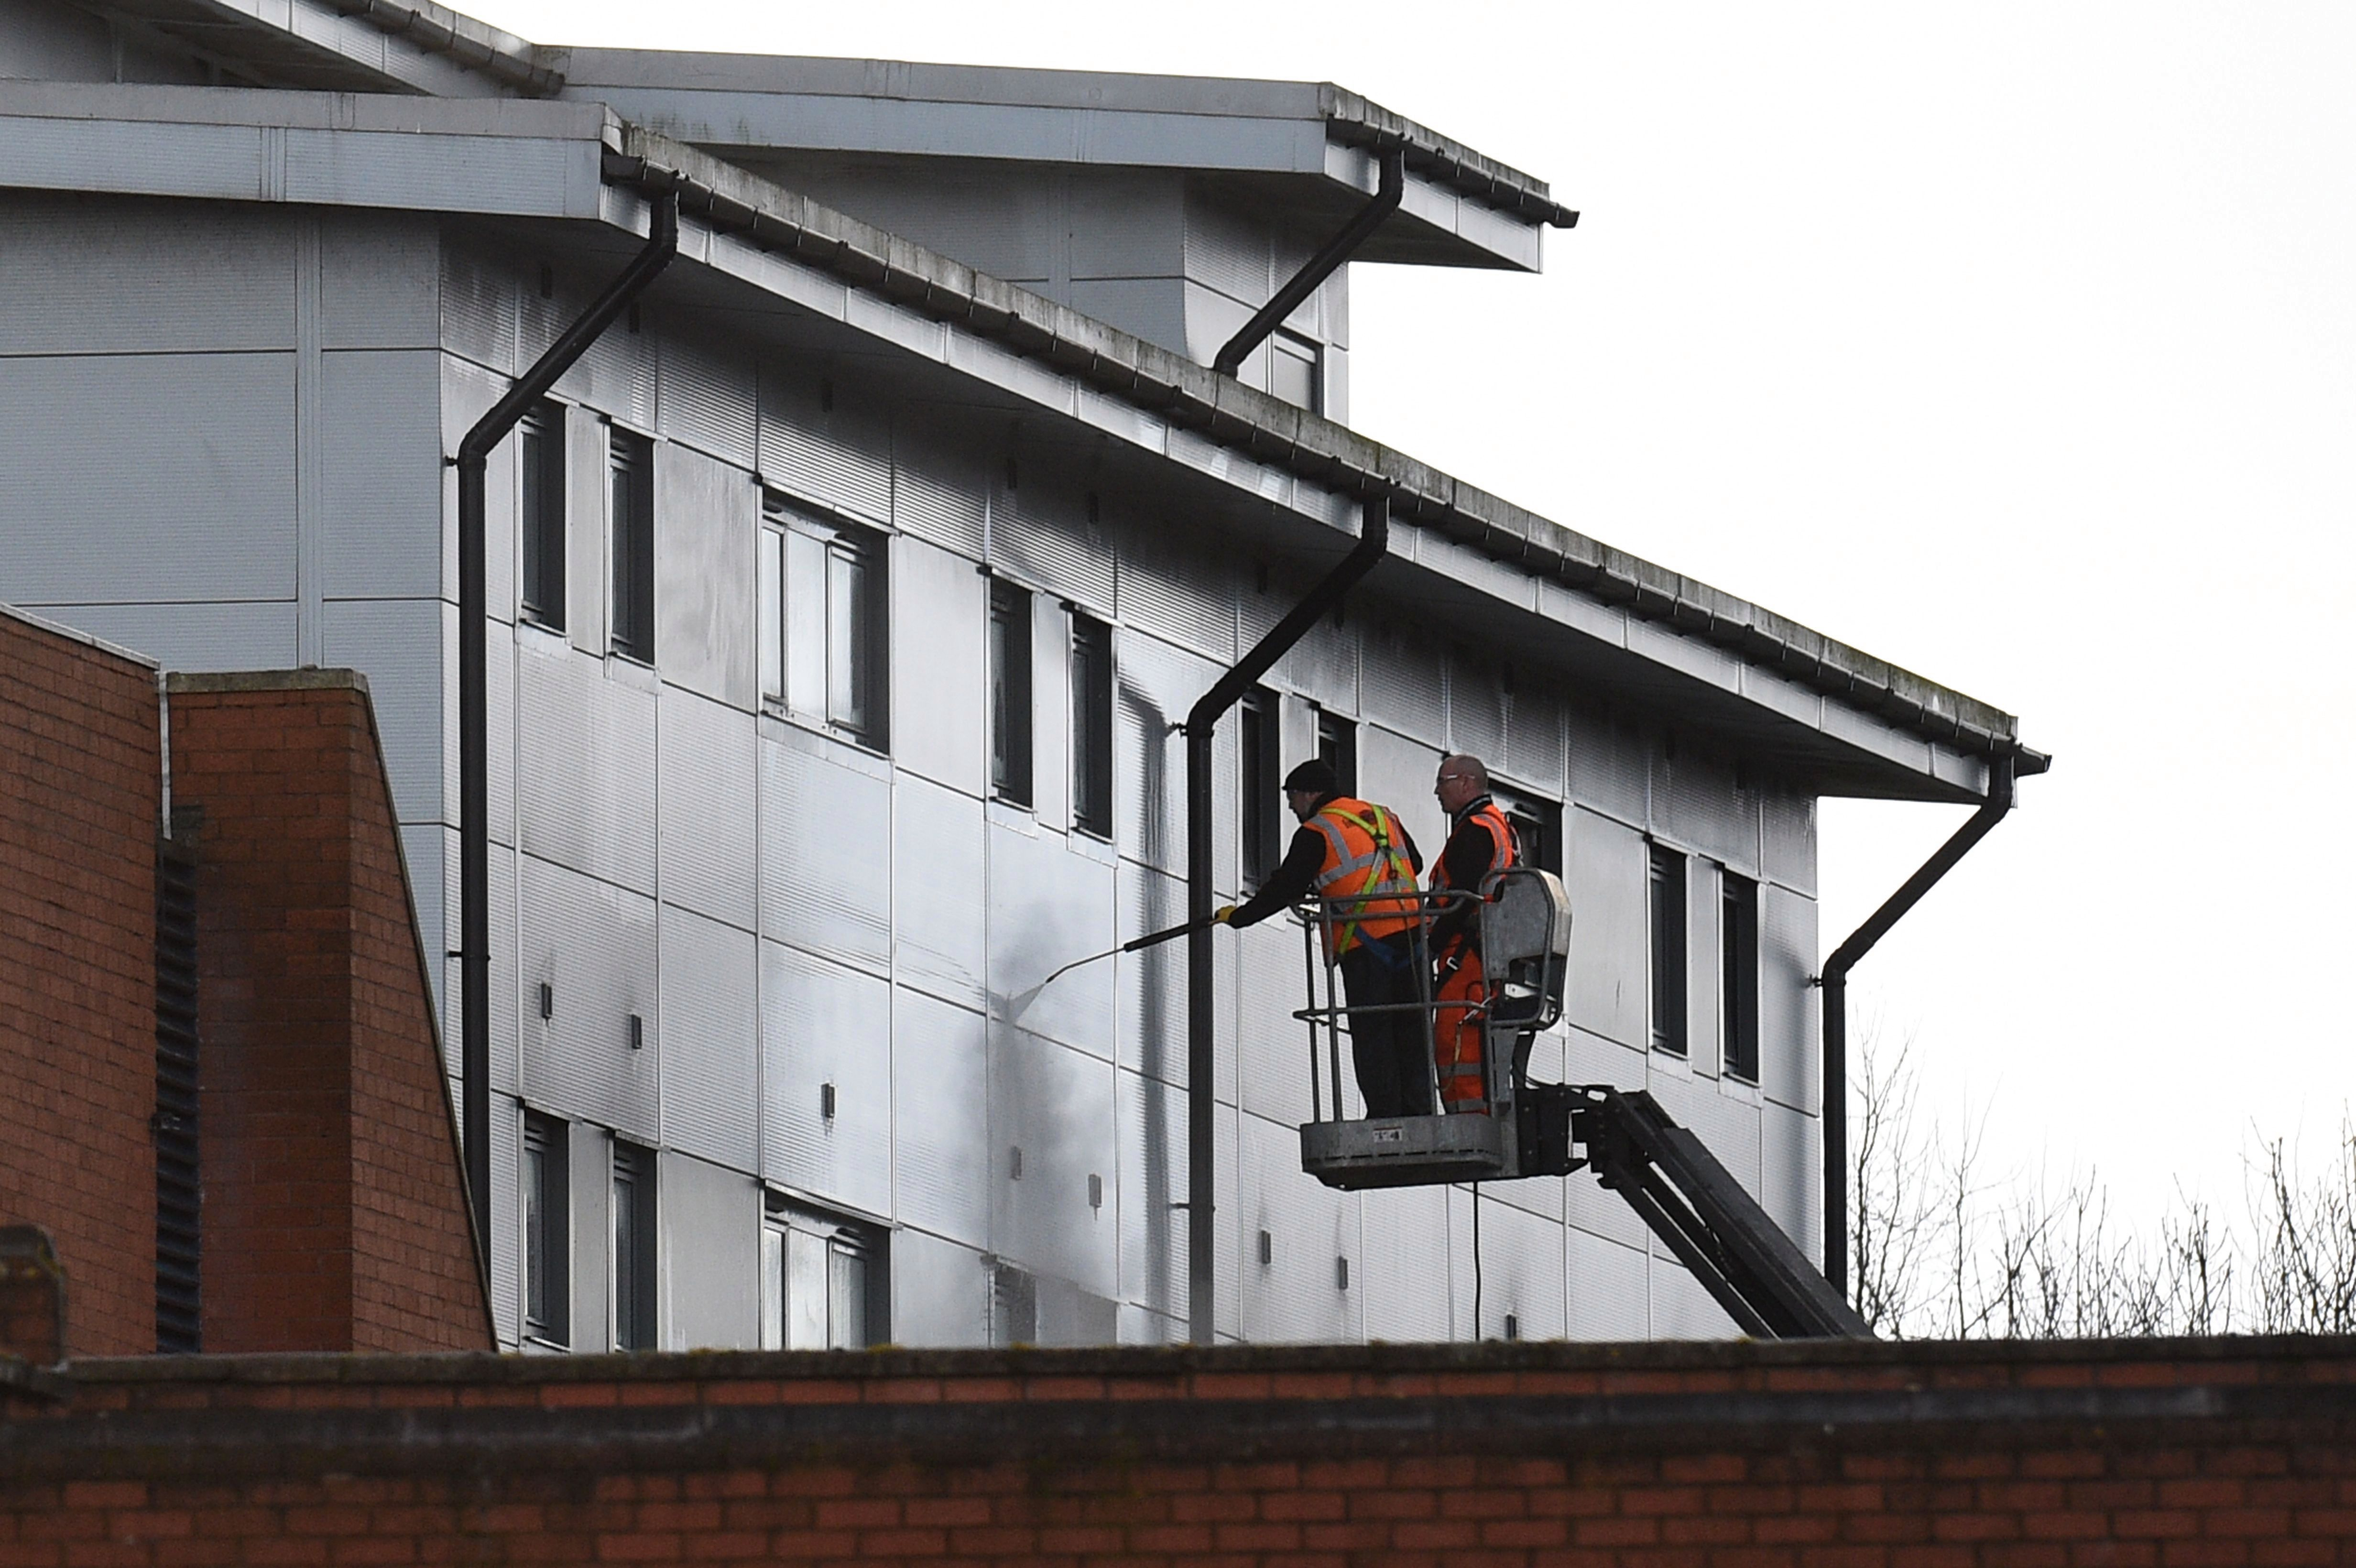 Workers use a pressure cleaner to wash the front of accommodation blocks to house British nationals evacuated from Wuhan